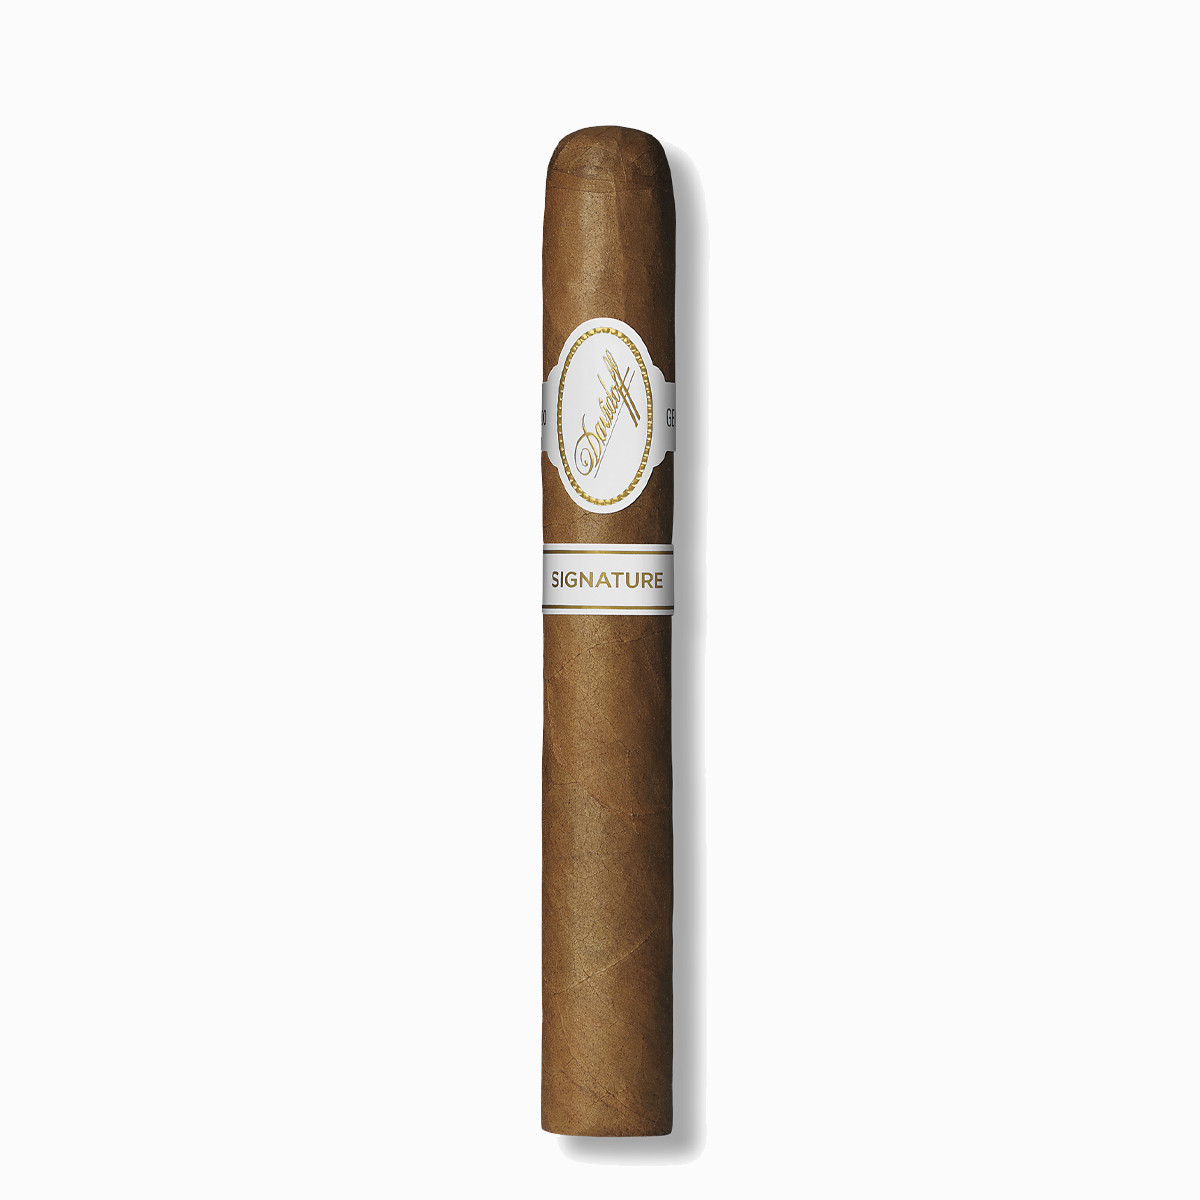 Davidoff Signature 2000 (5x43 / Single)